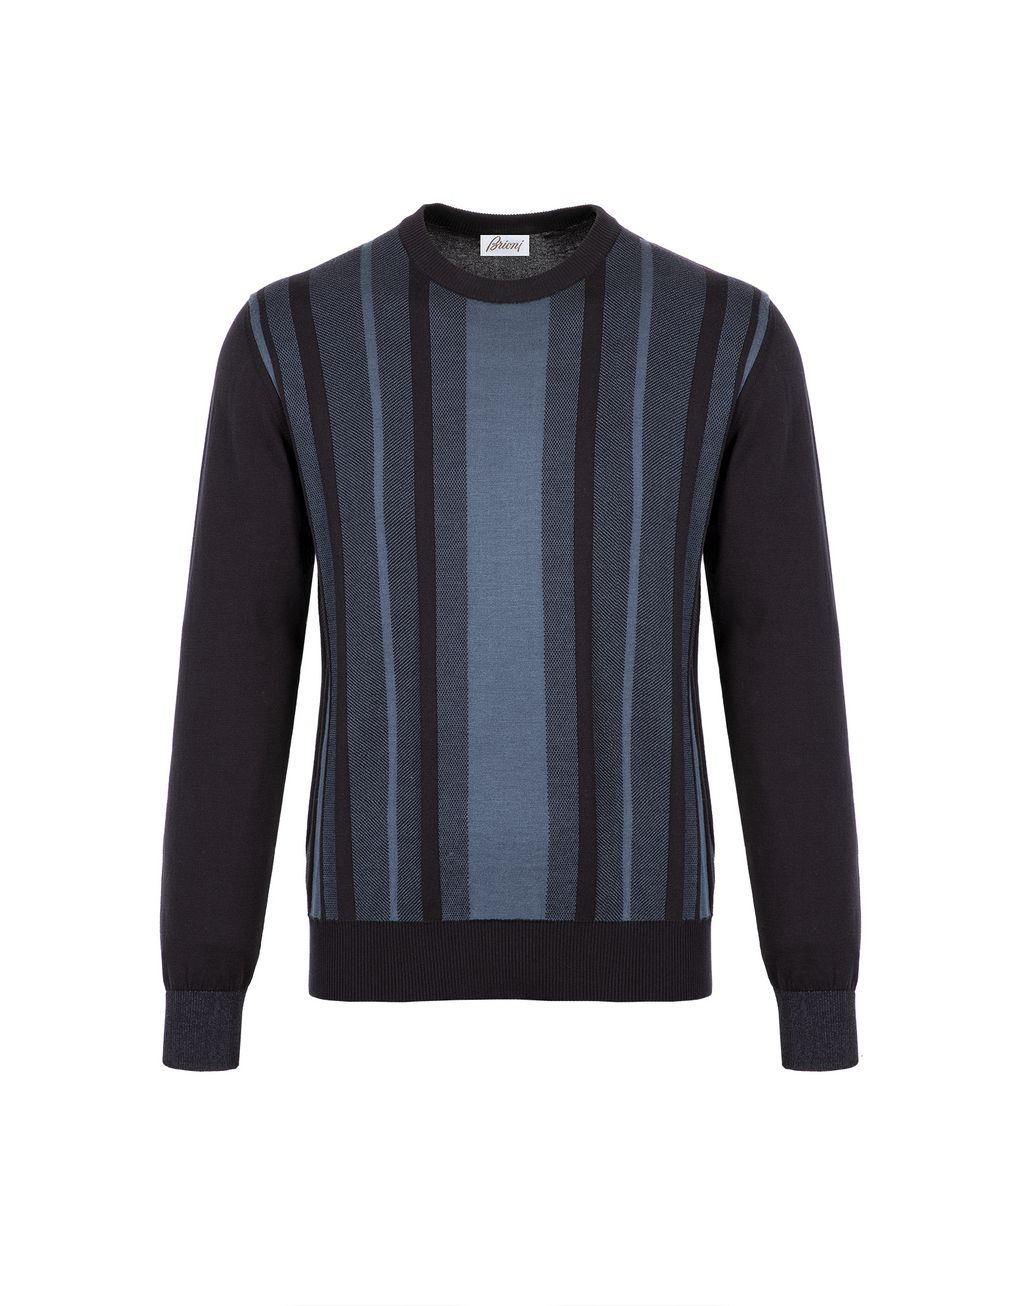 BRIONI Navy-Blue Cotton and Silk Striped Sweater with Two-Tone Trim Knitwear U f